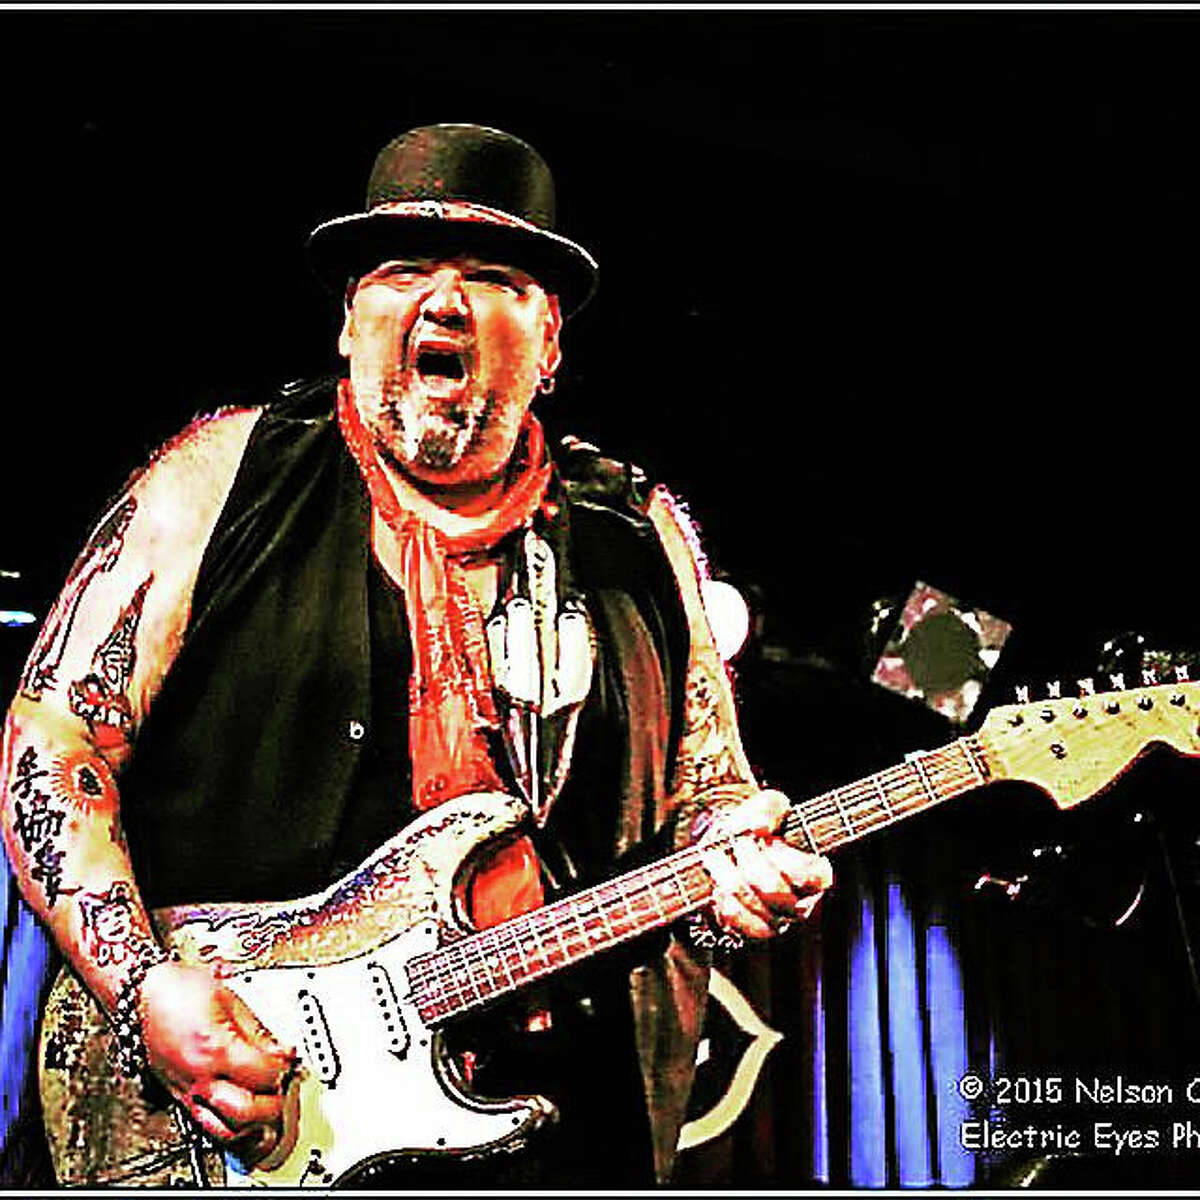 Electric Eyes PhotographyPopa Chubby stops at Black-Eyed Sally's this weekend during his concert tour.